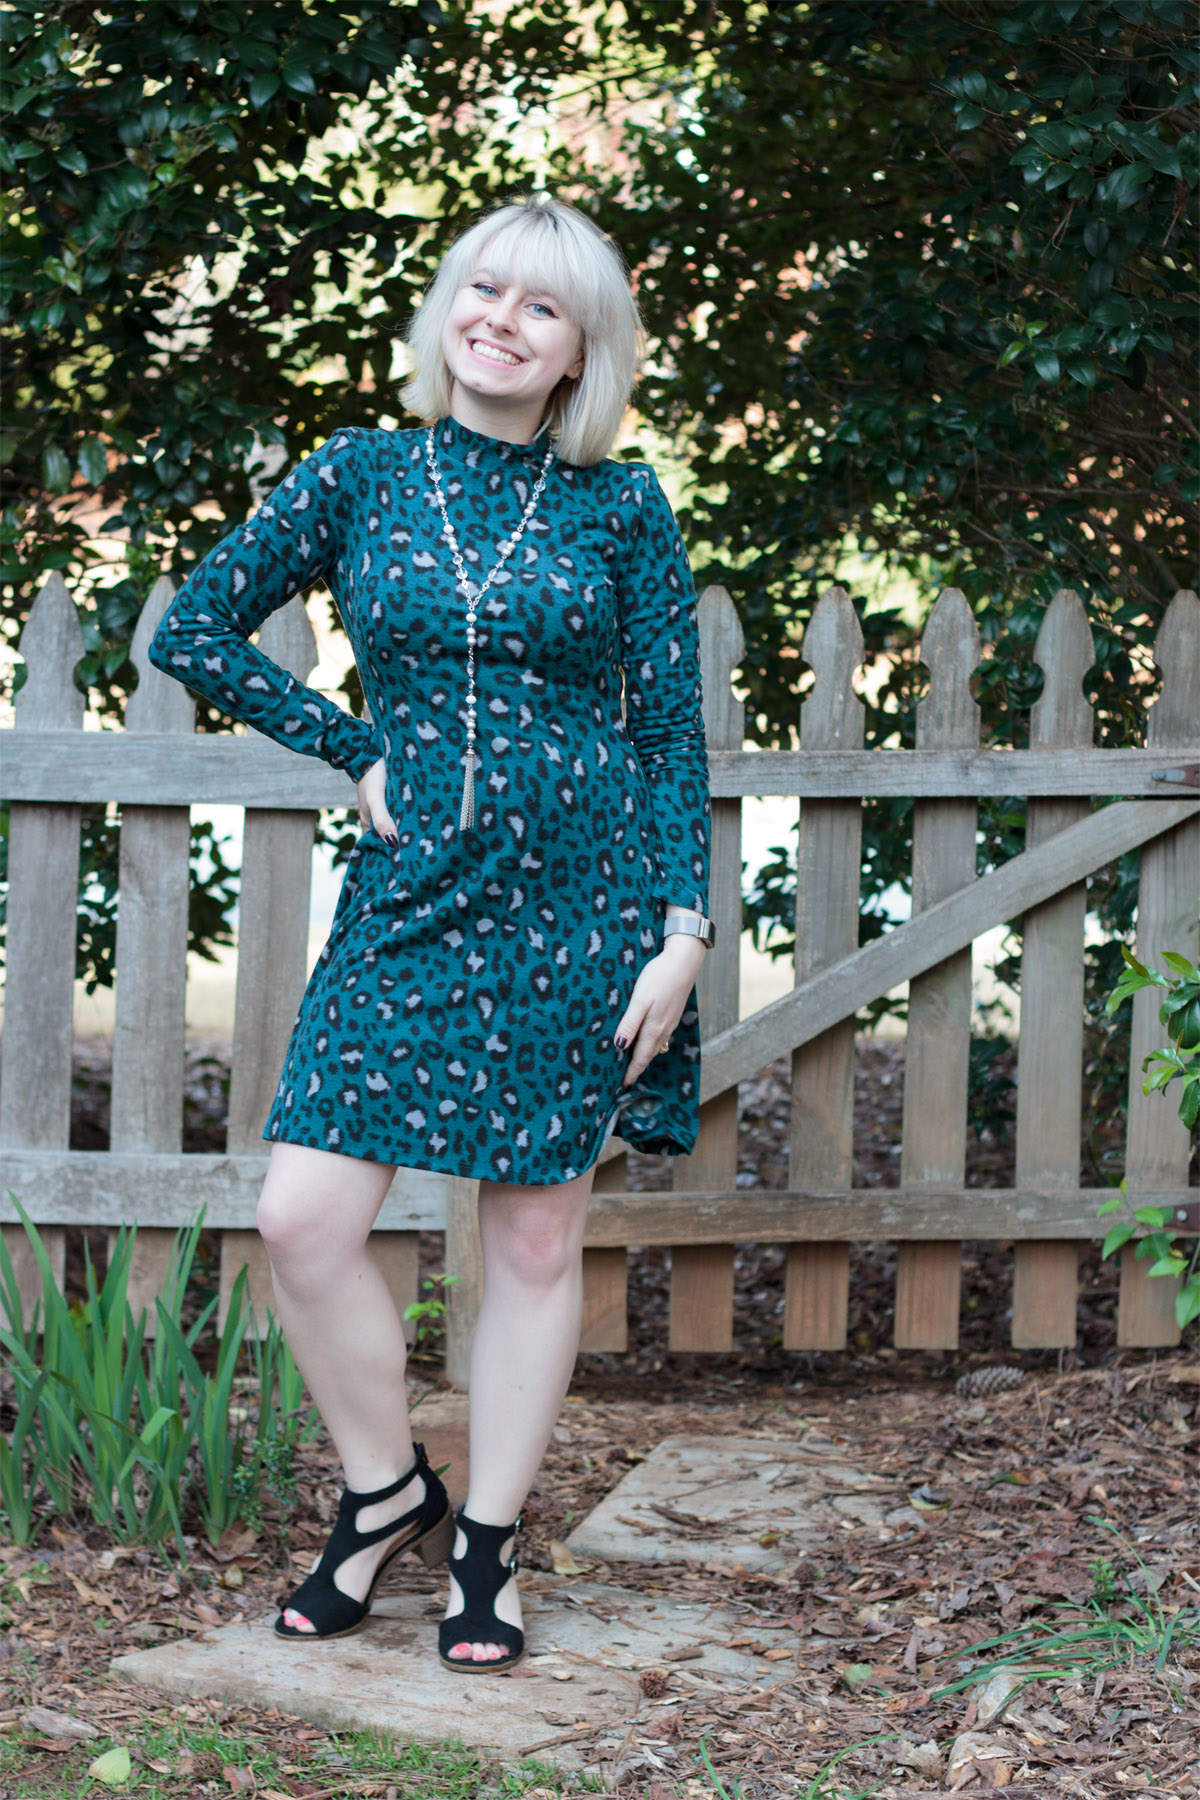 Mock Neck Teal Leopard Print Dress, Tassel Necklace, and Black Target Sandals